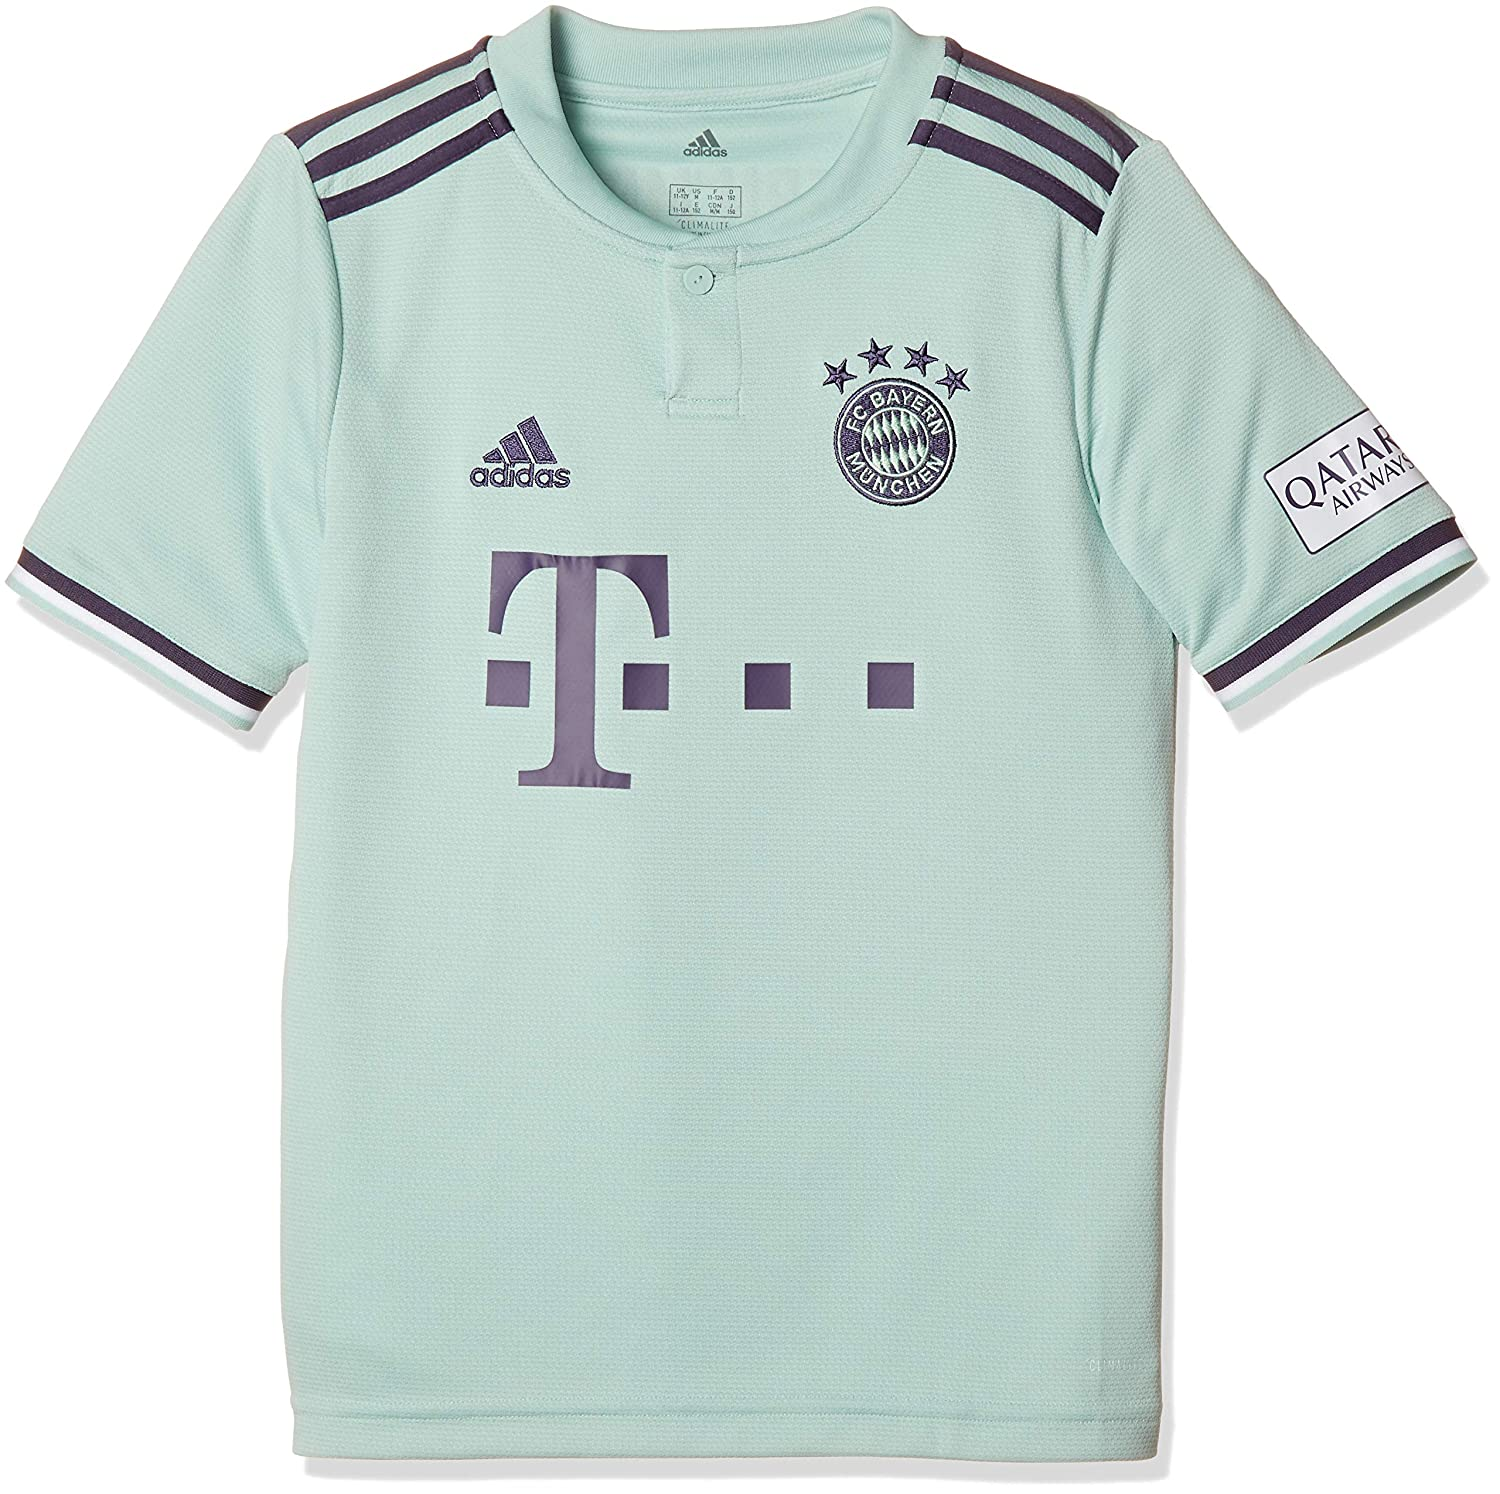 buy online 1852f 7f393 adidas 2018-2019 Bayern Munich Away Football Soccer T-Shirt ...